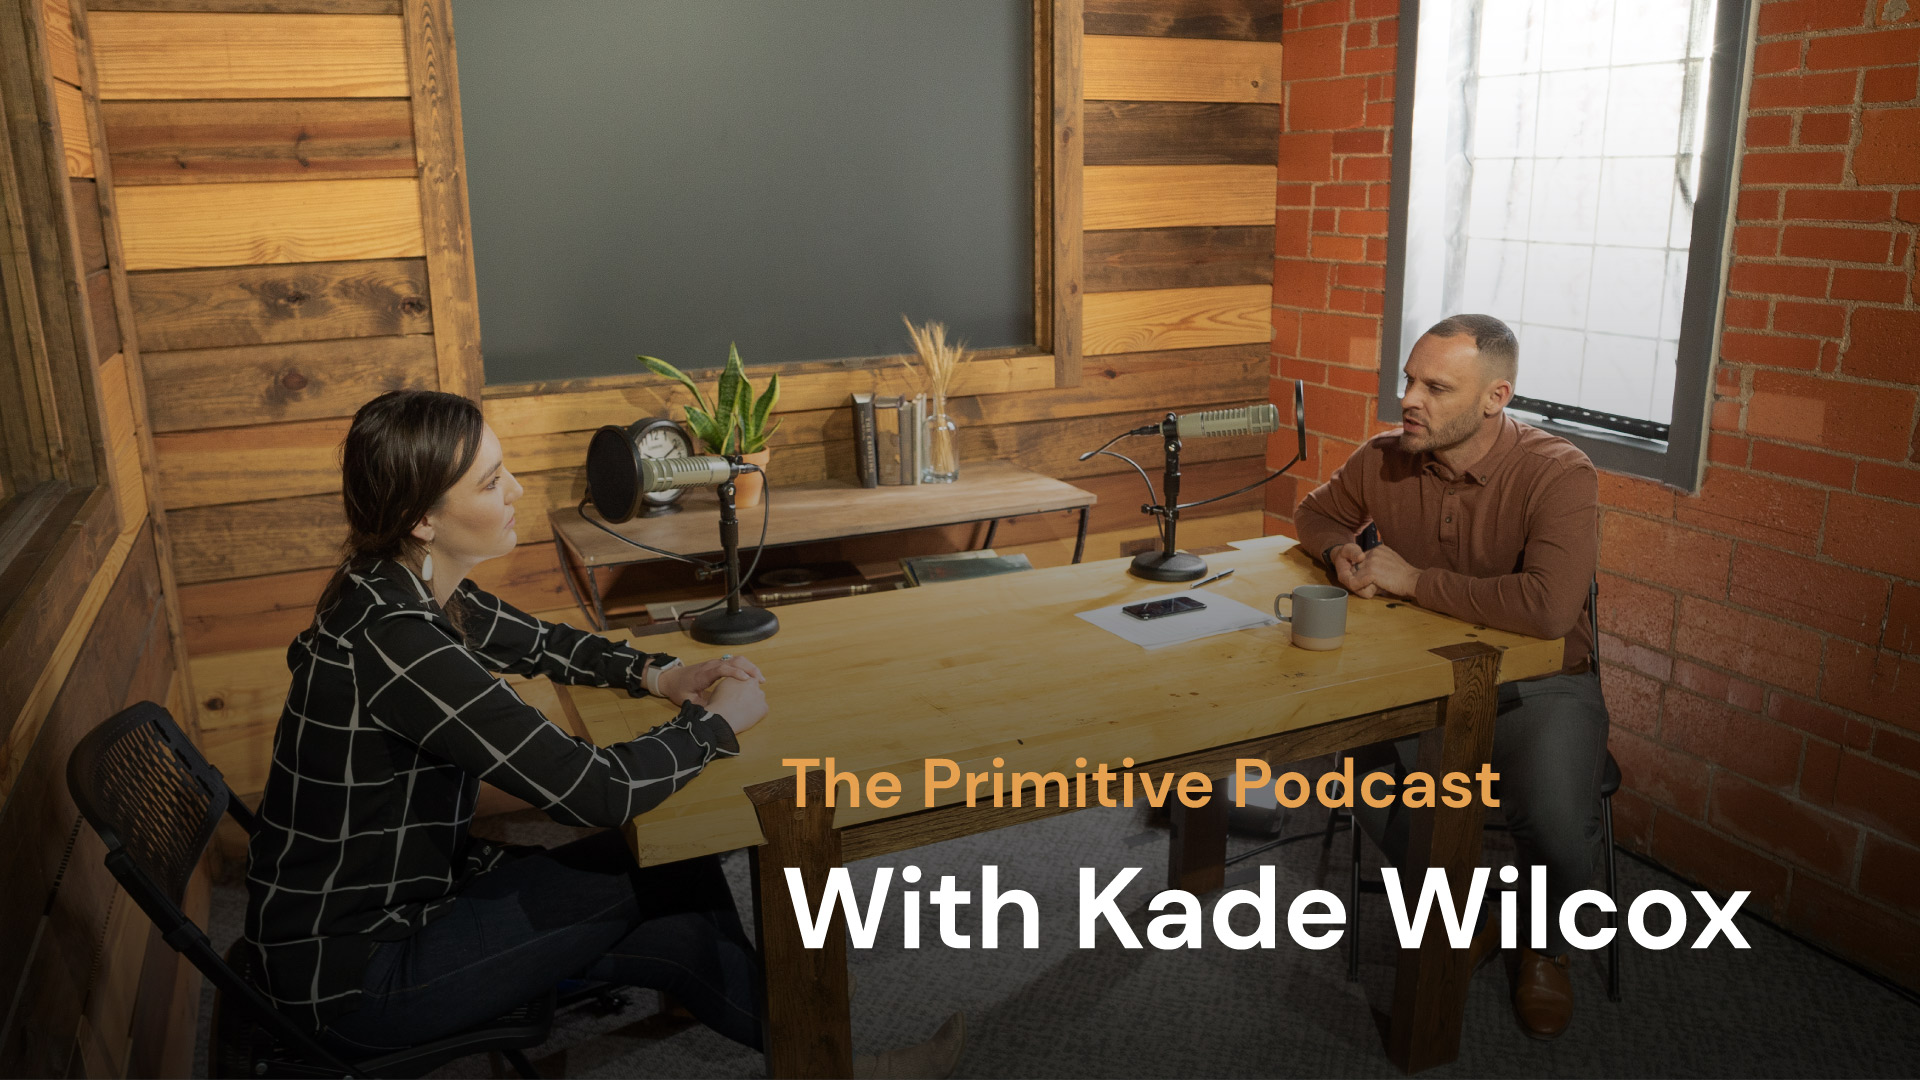 The Primitive Podcast: Kade Wilcox